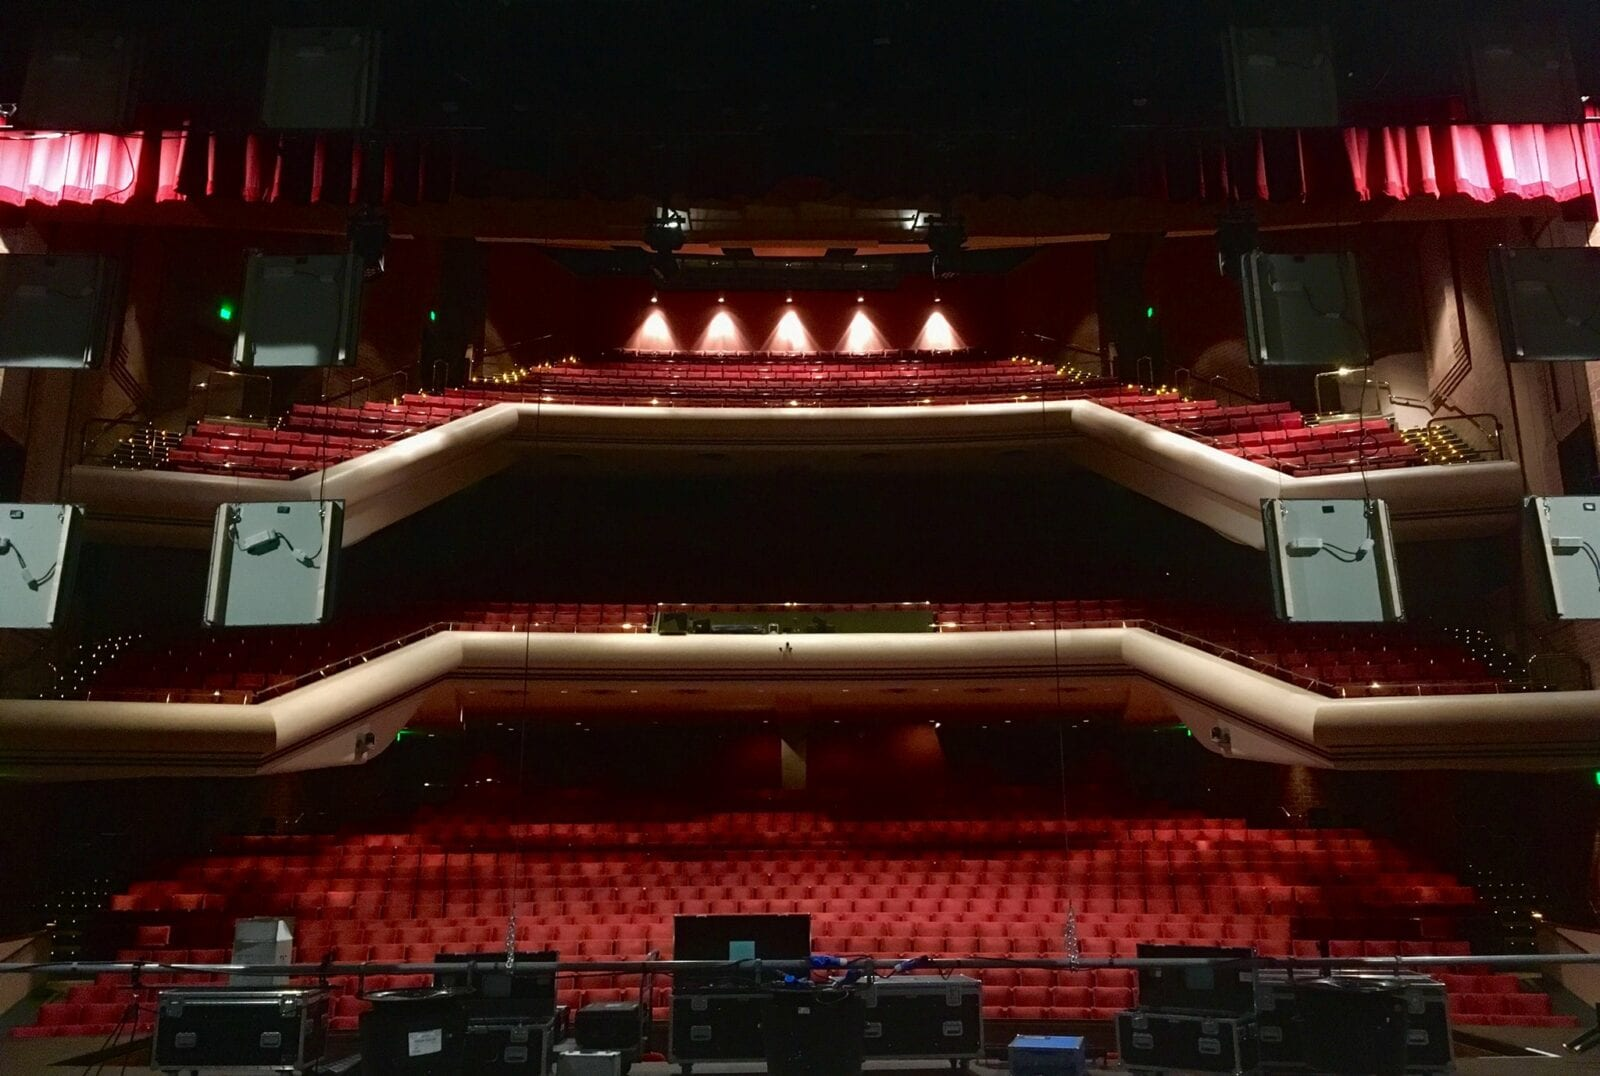 Image of the Union Colony Civic Center in Greeley, Colorado Monfort Concert Hall